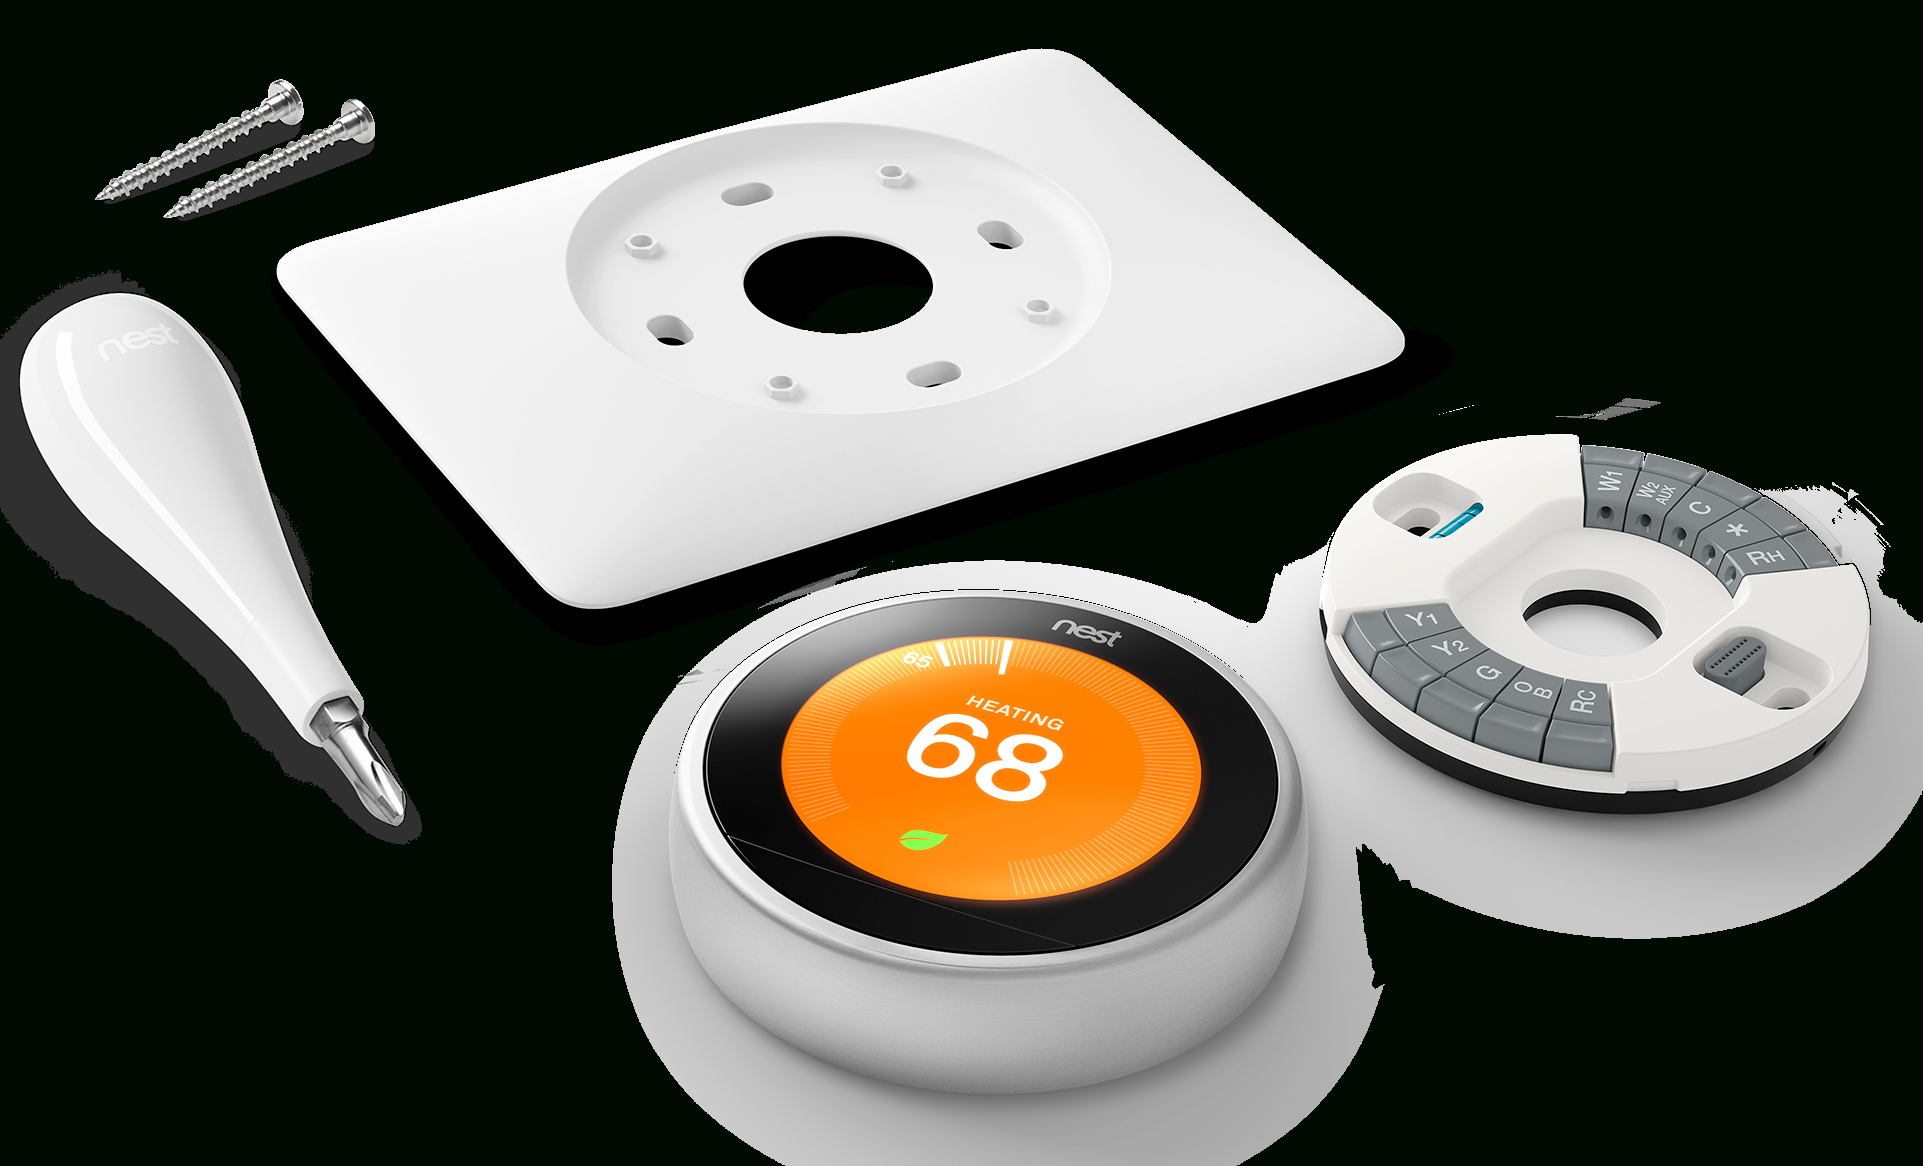 How To Install Your Nest Thermostat - Nest Where's My Custom Wiring Diagram